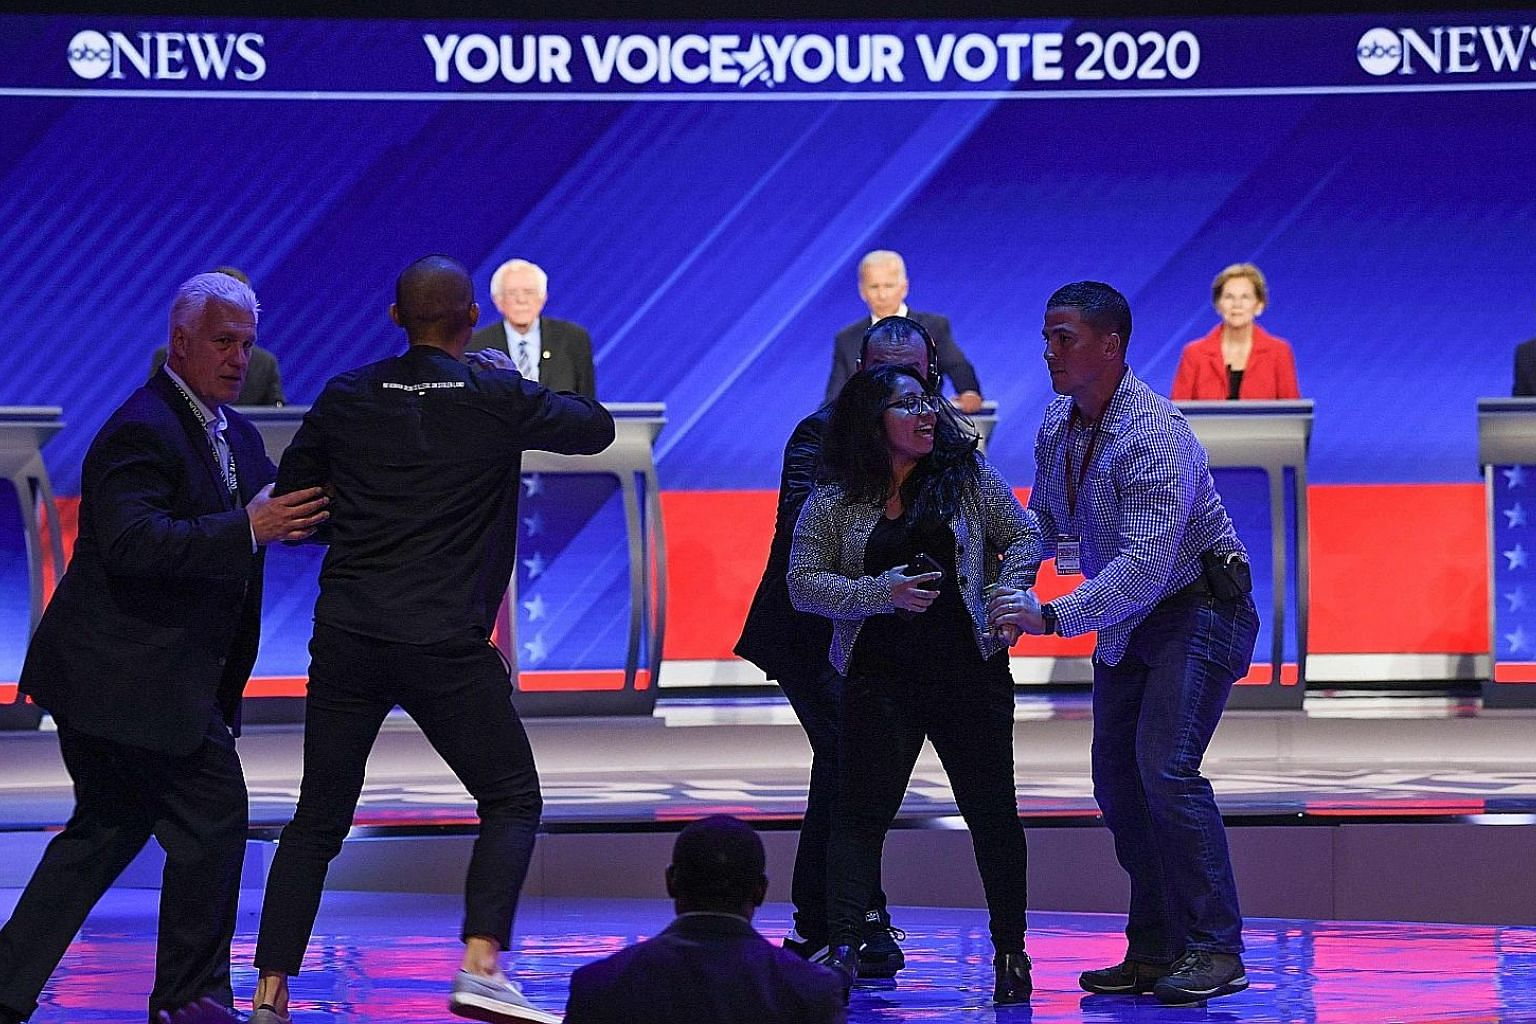 Protesters being escorted off the stage at the third Democratic primary debate in Houston, Texas, on Thursday, as (from left) Senator Bernie Sanders, former vice-president Joe Biden and Senator Elizabeth Warren look on. Ten presidential hopefuls part